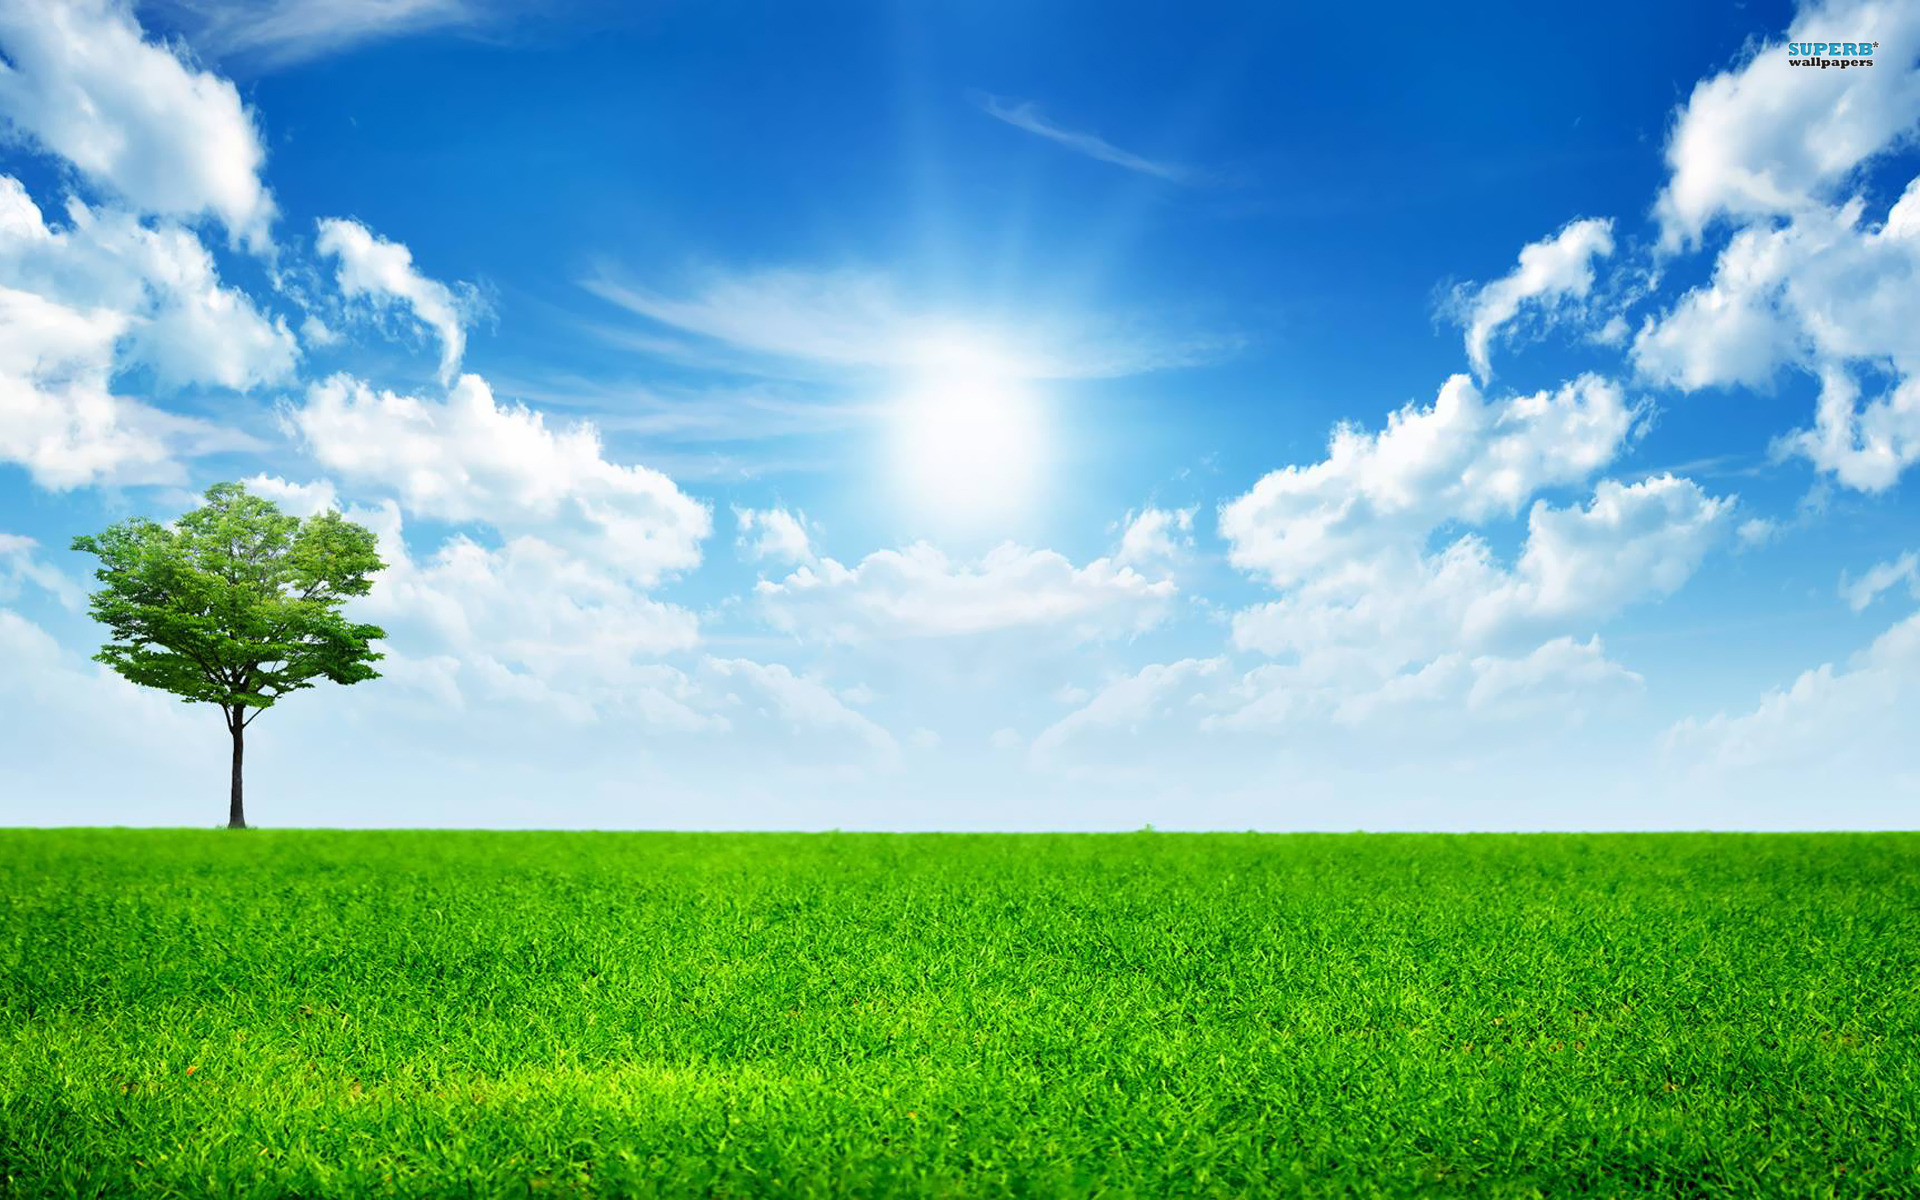 Sunny Day Background wallpaper  1920x1200  32061